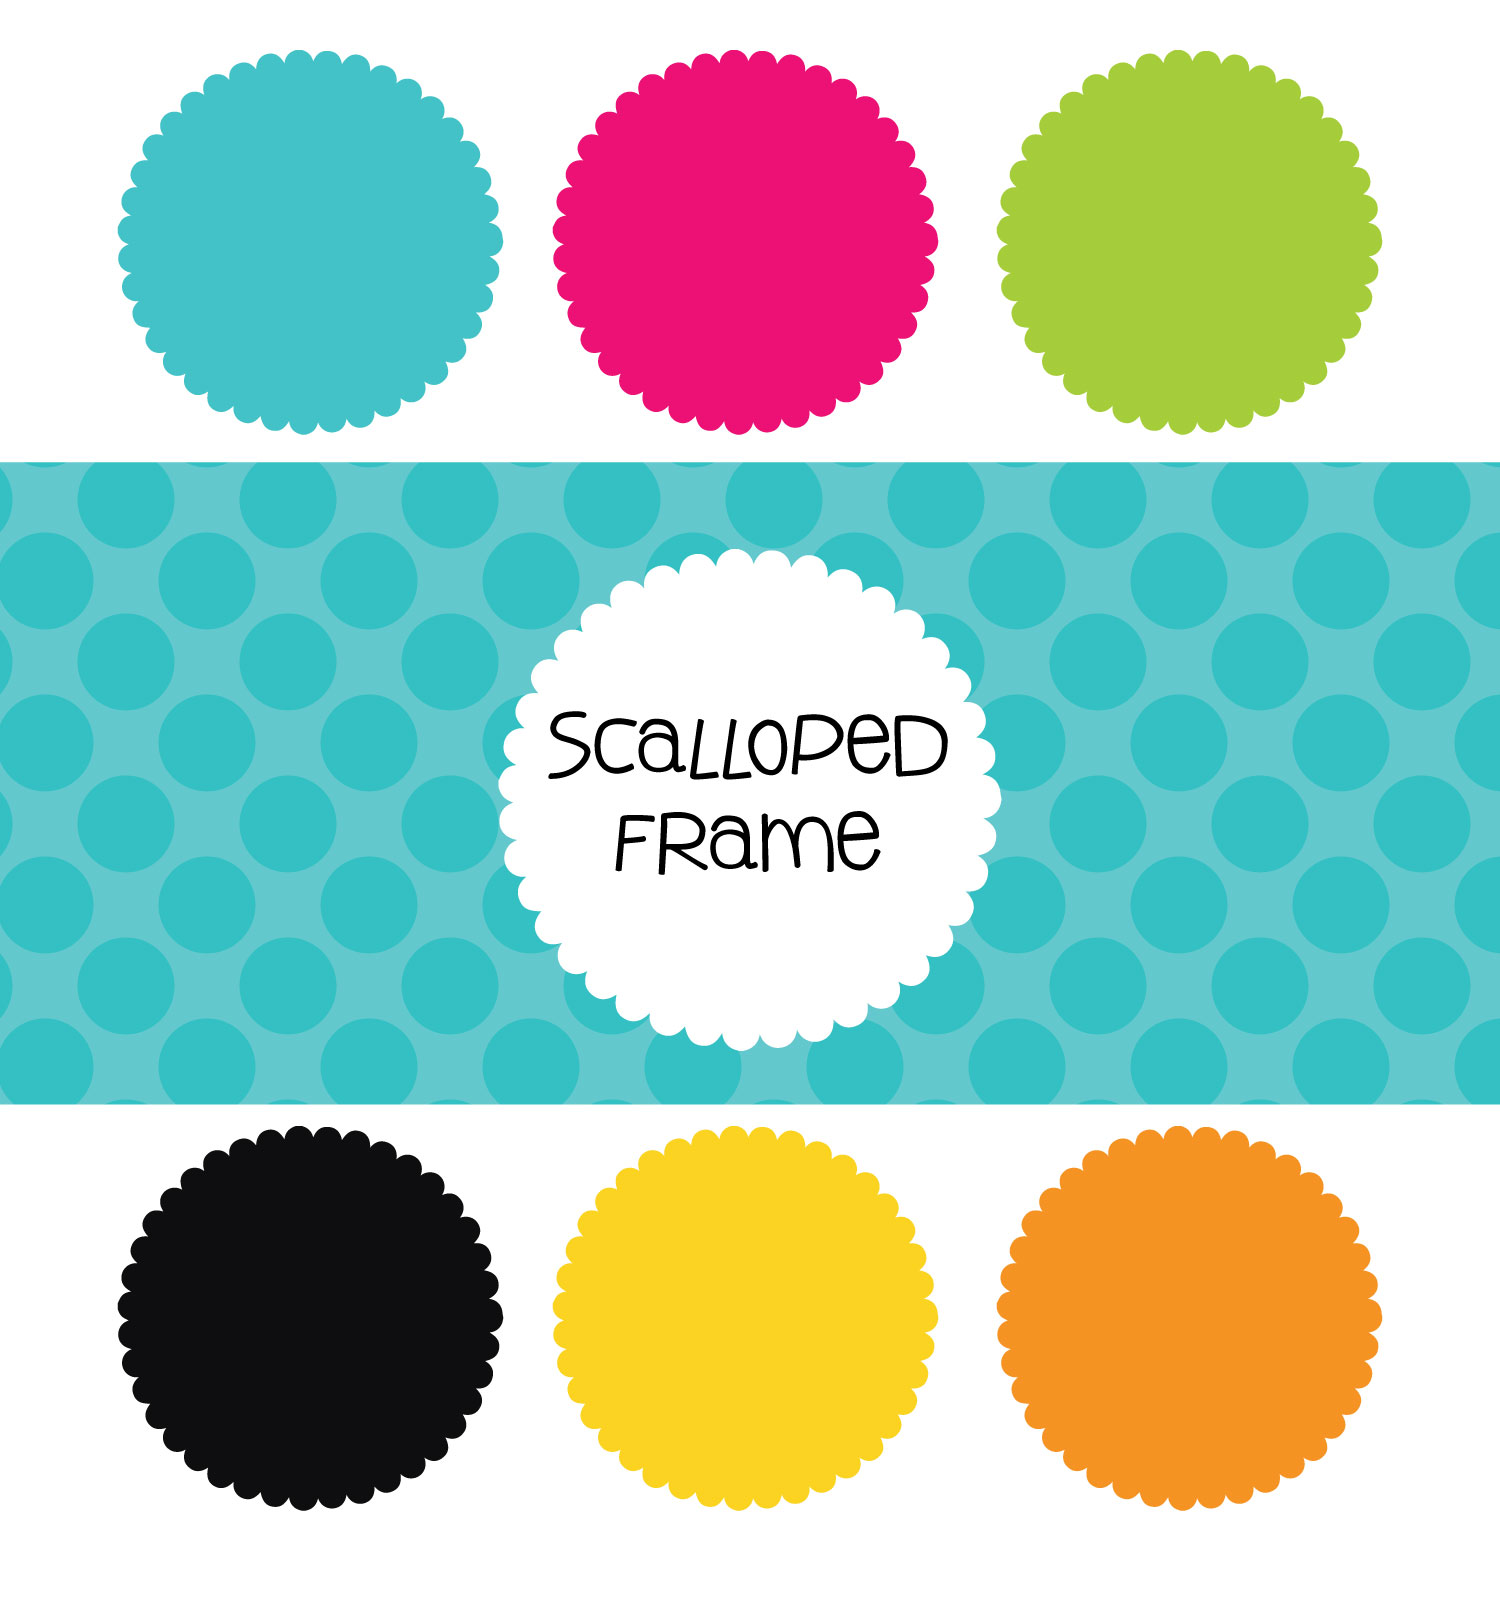 Scalloped Frames Clipart- Free Download